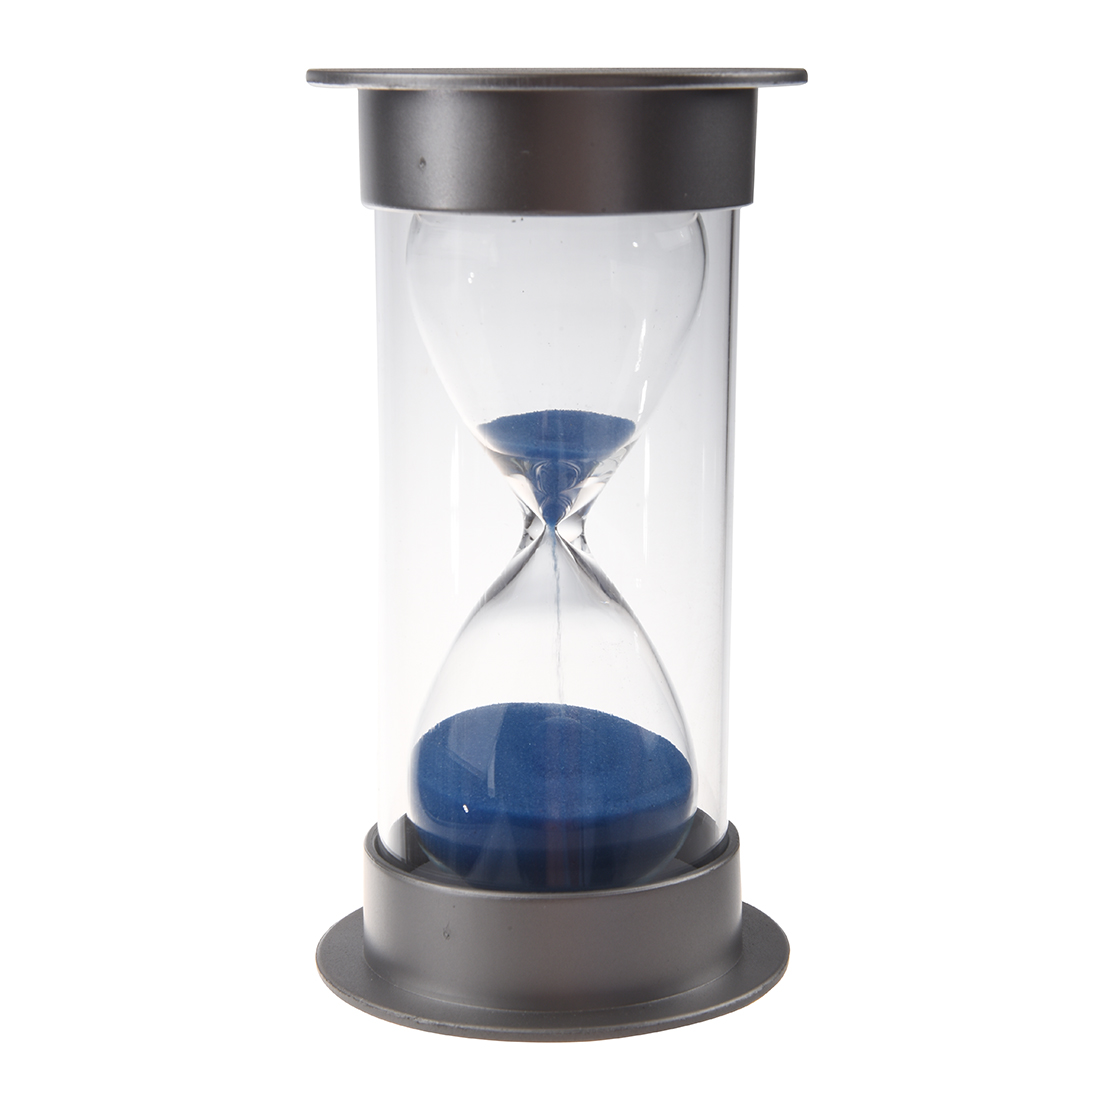 tfbc plastic crystal sandglass 30 minutes sand clock decoration sandglass timer 10mins 15mins 30mins 3 colors